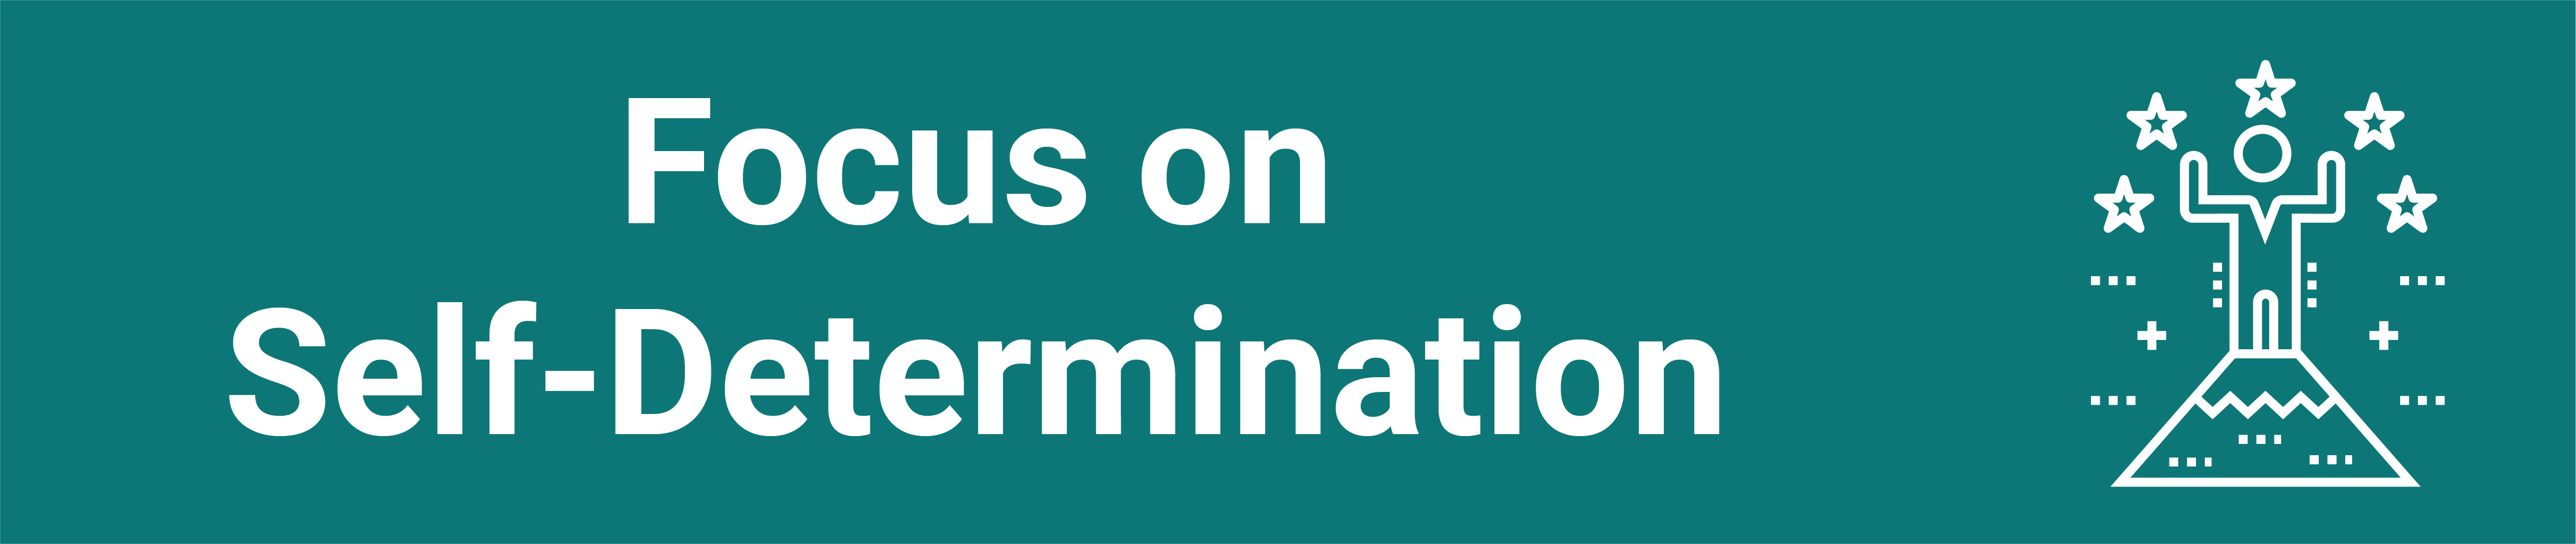 Text: Focus on Self-Determination on a teal background with an icon of a target in square brackets in white